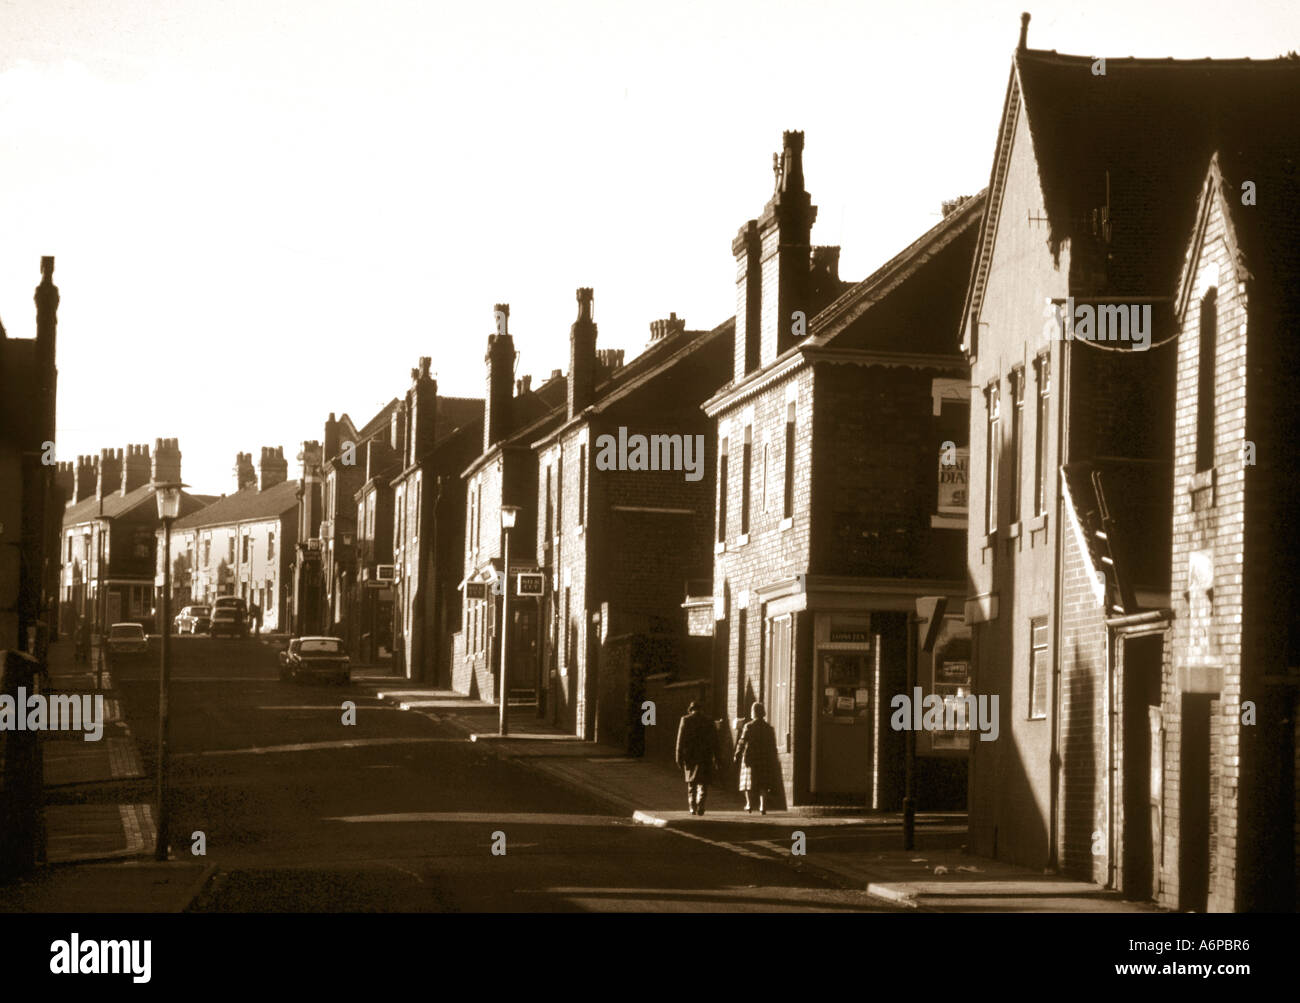 One Of The Many Back Streets Of Stoke-On-Trent. - Stock Image